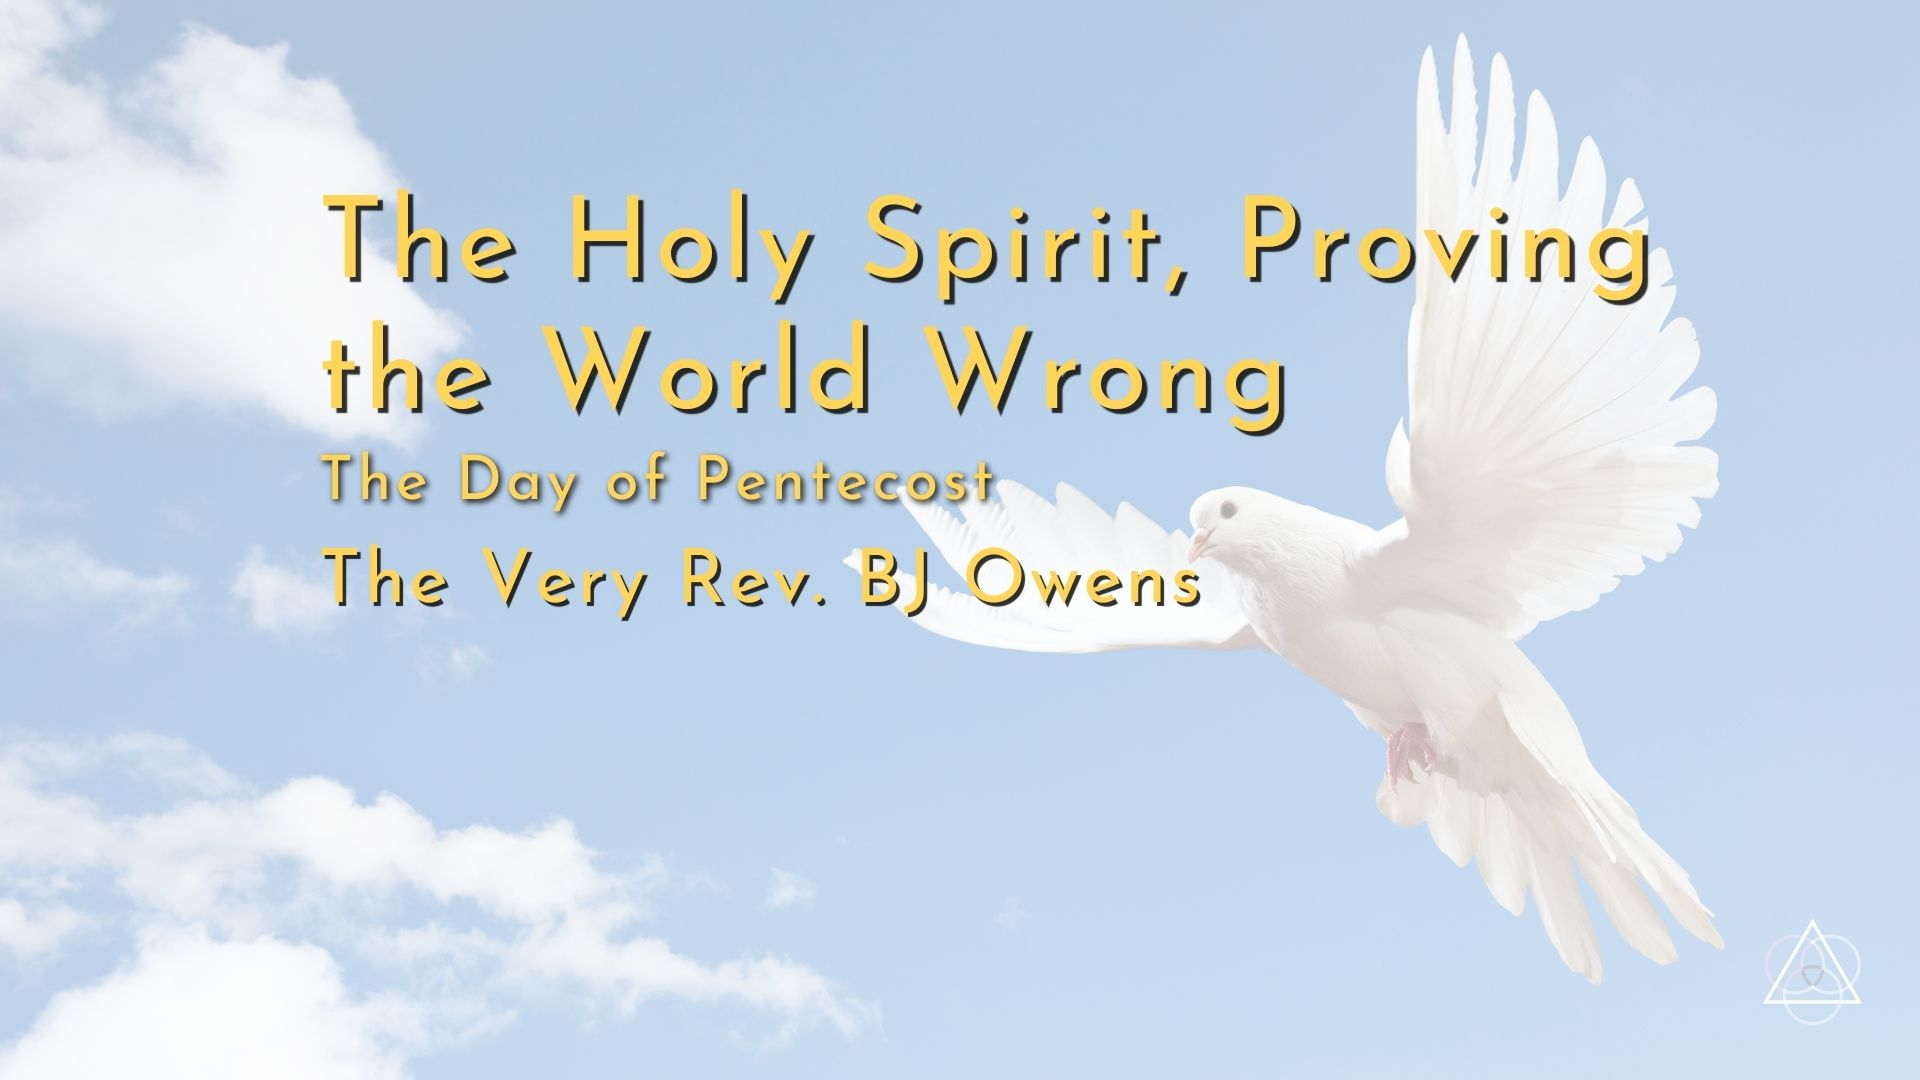 Video Sermon: The Day of Pentecost — The Holy Spirit, Proving the World Wrong